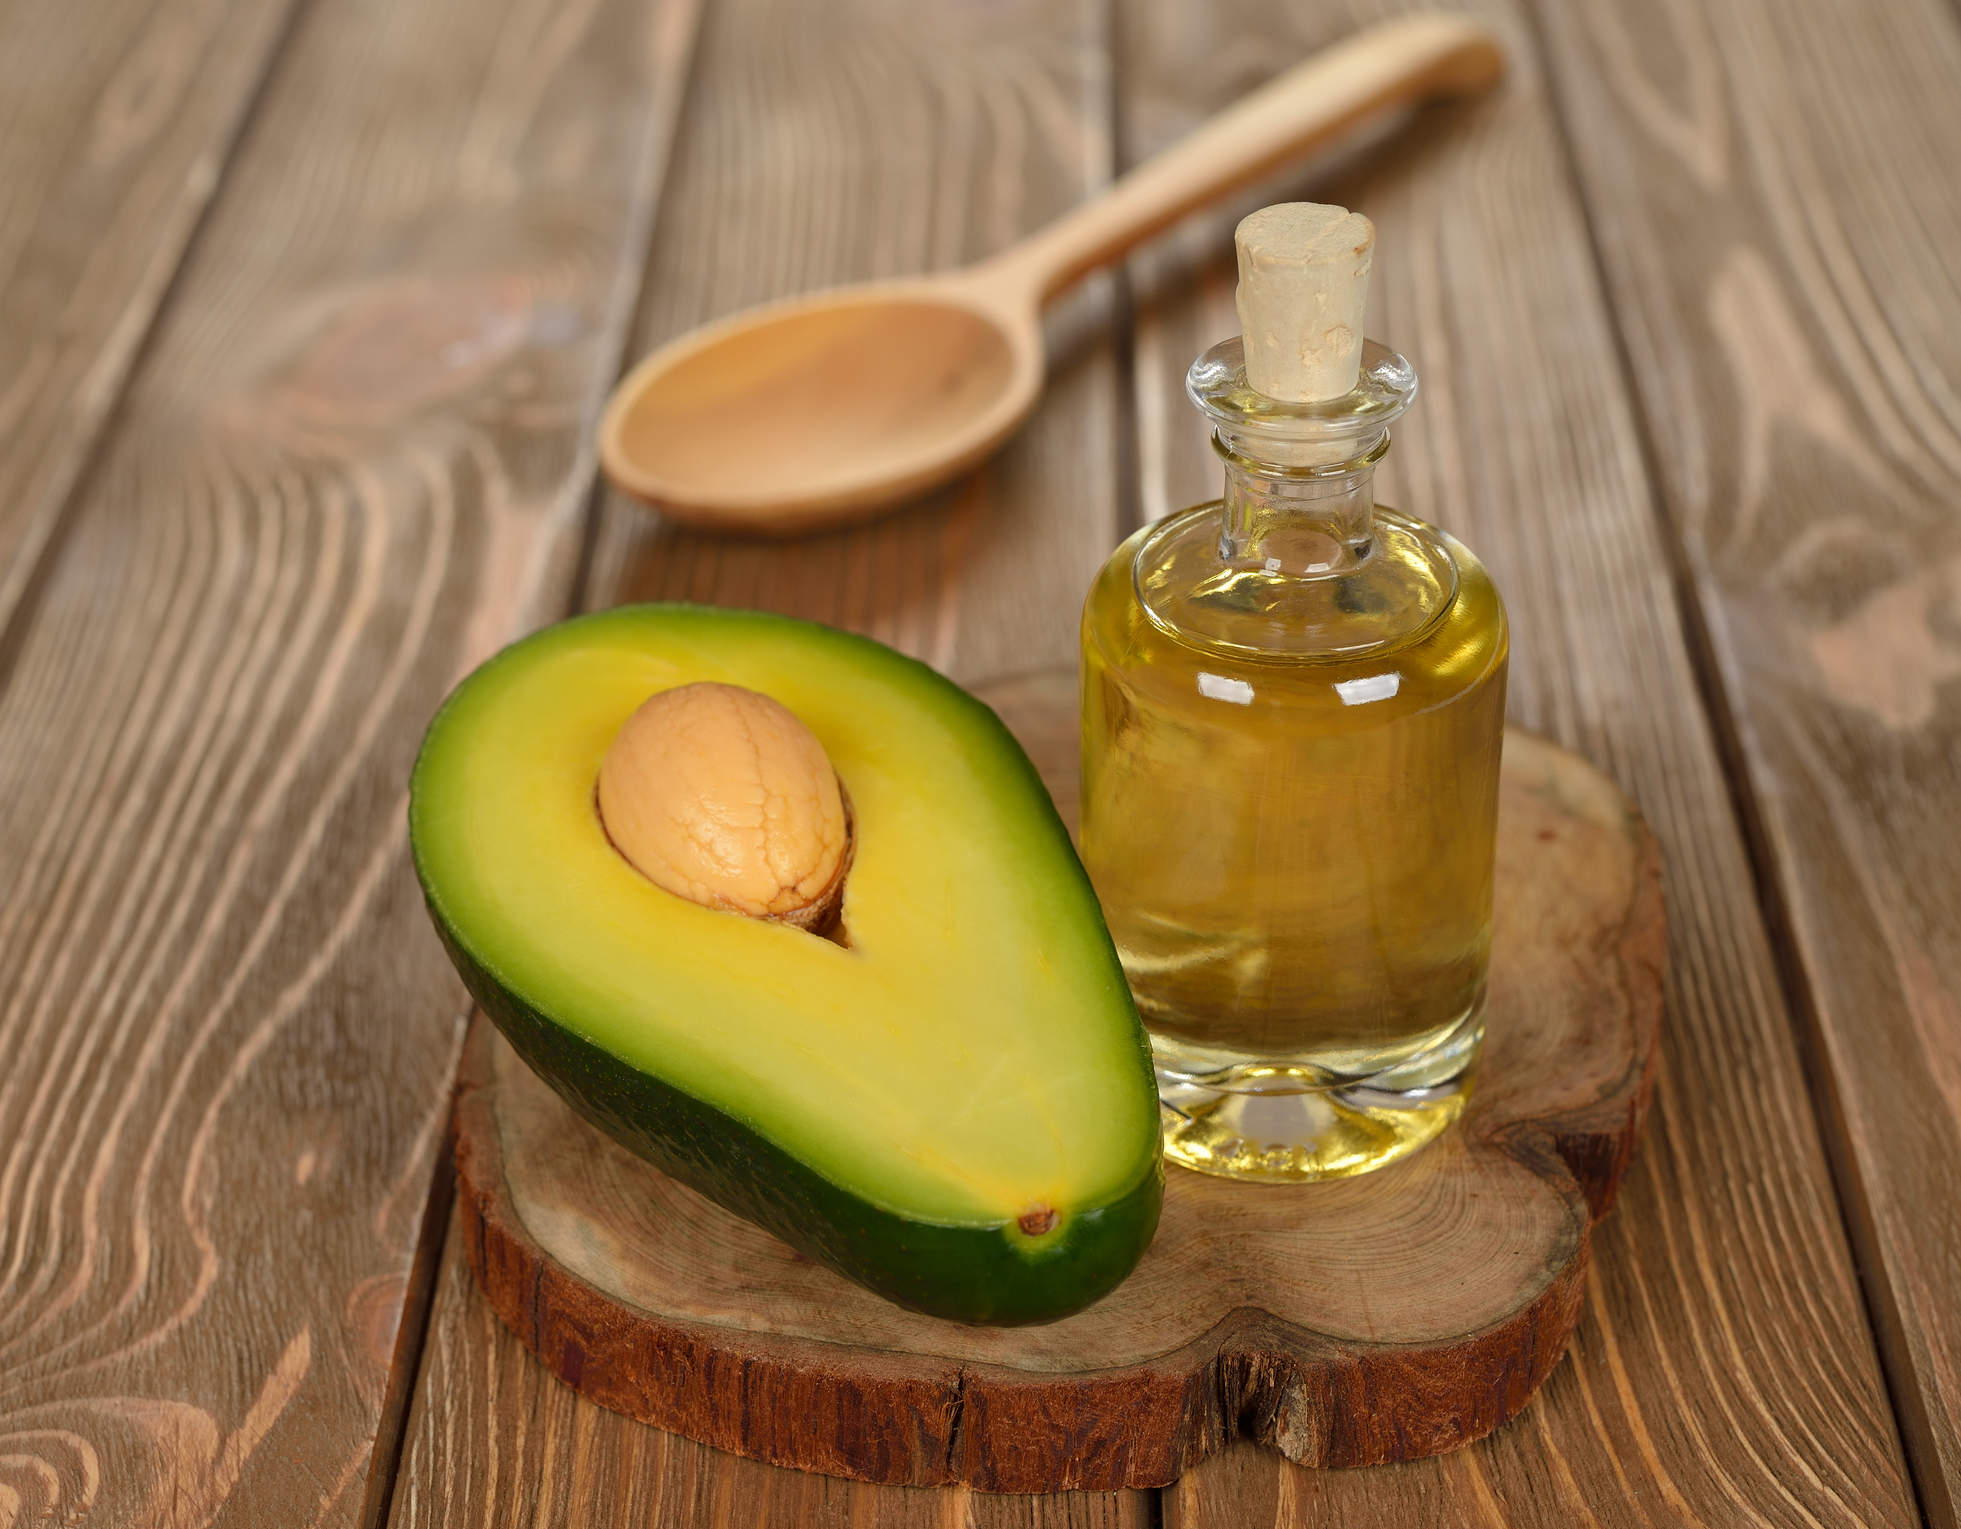 Avocado Oil Benefits: